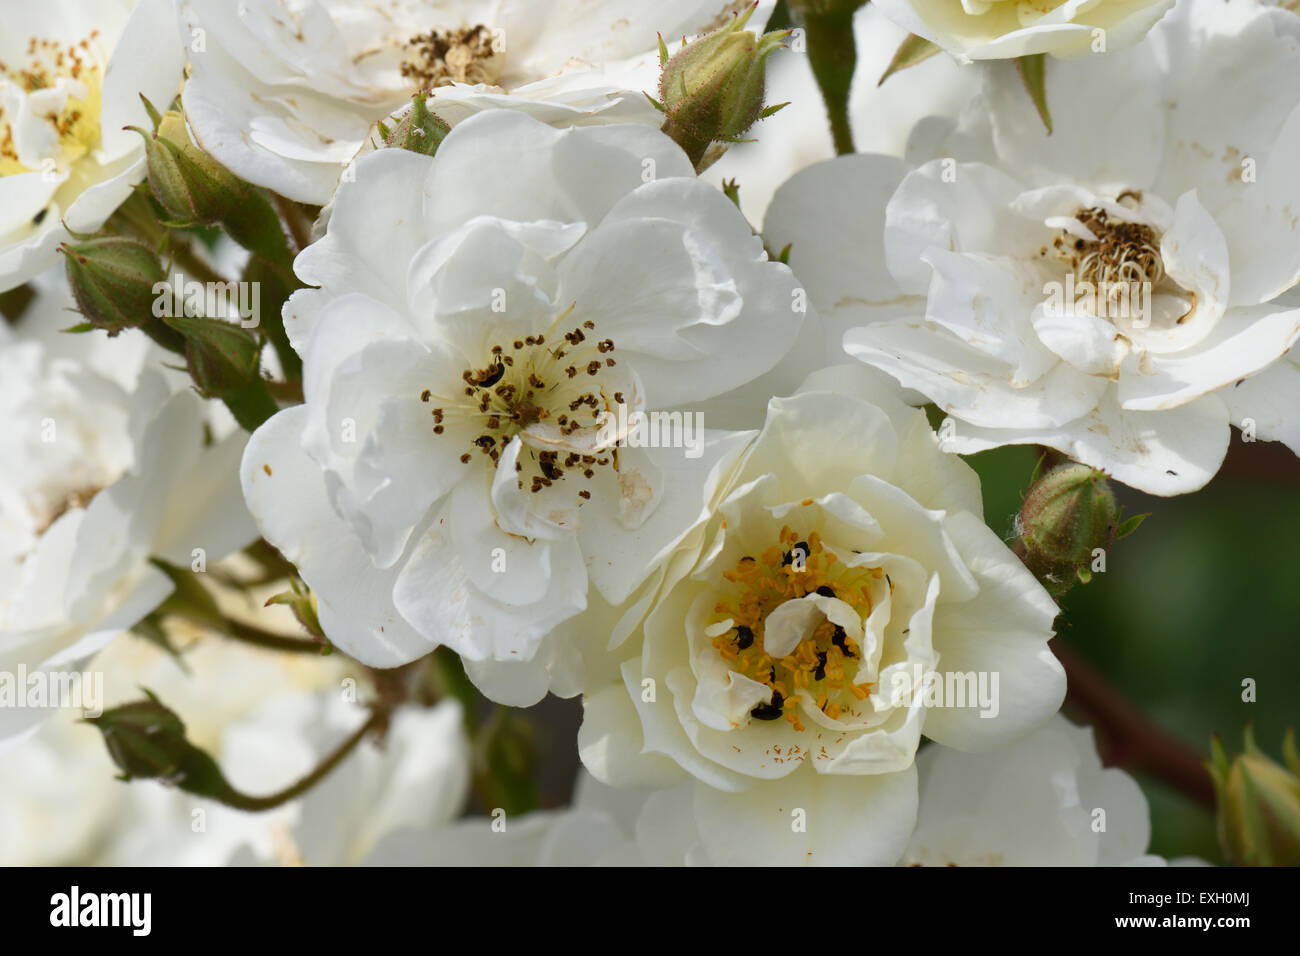 White flowers of a rambling rector rose with pollen beetles, Berkshire, June - Stock Image